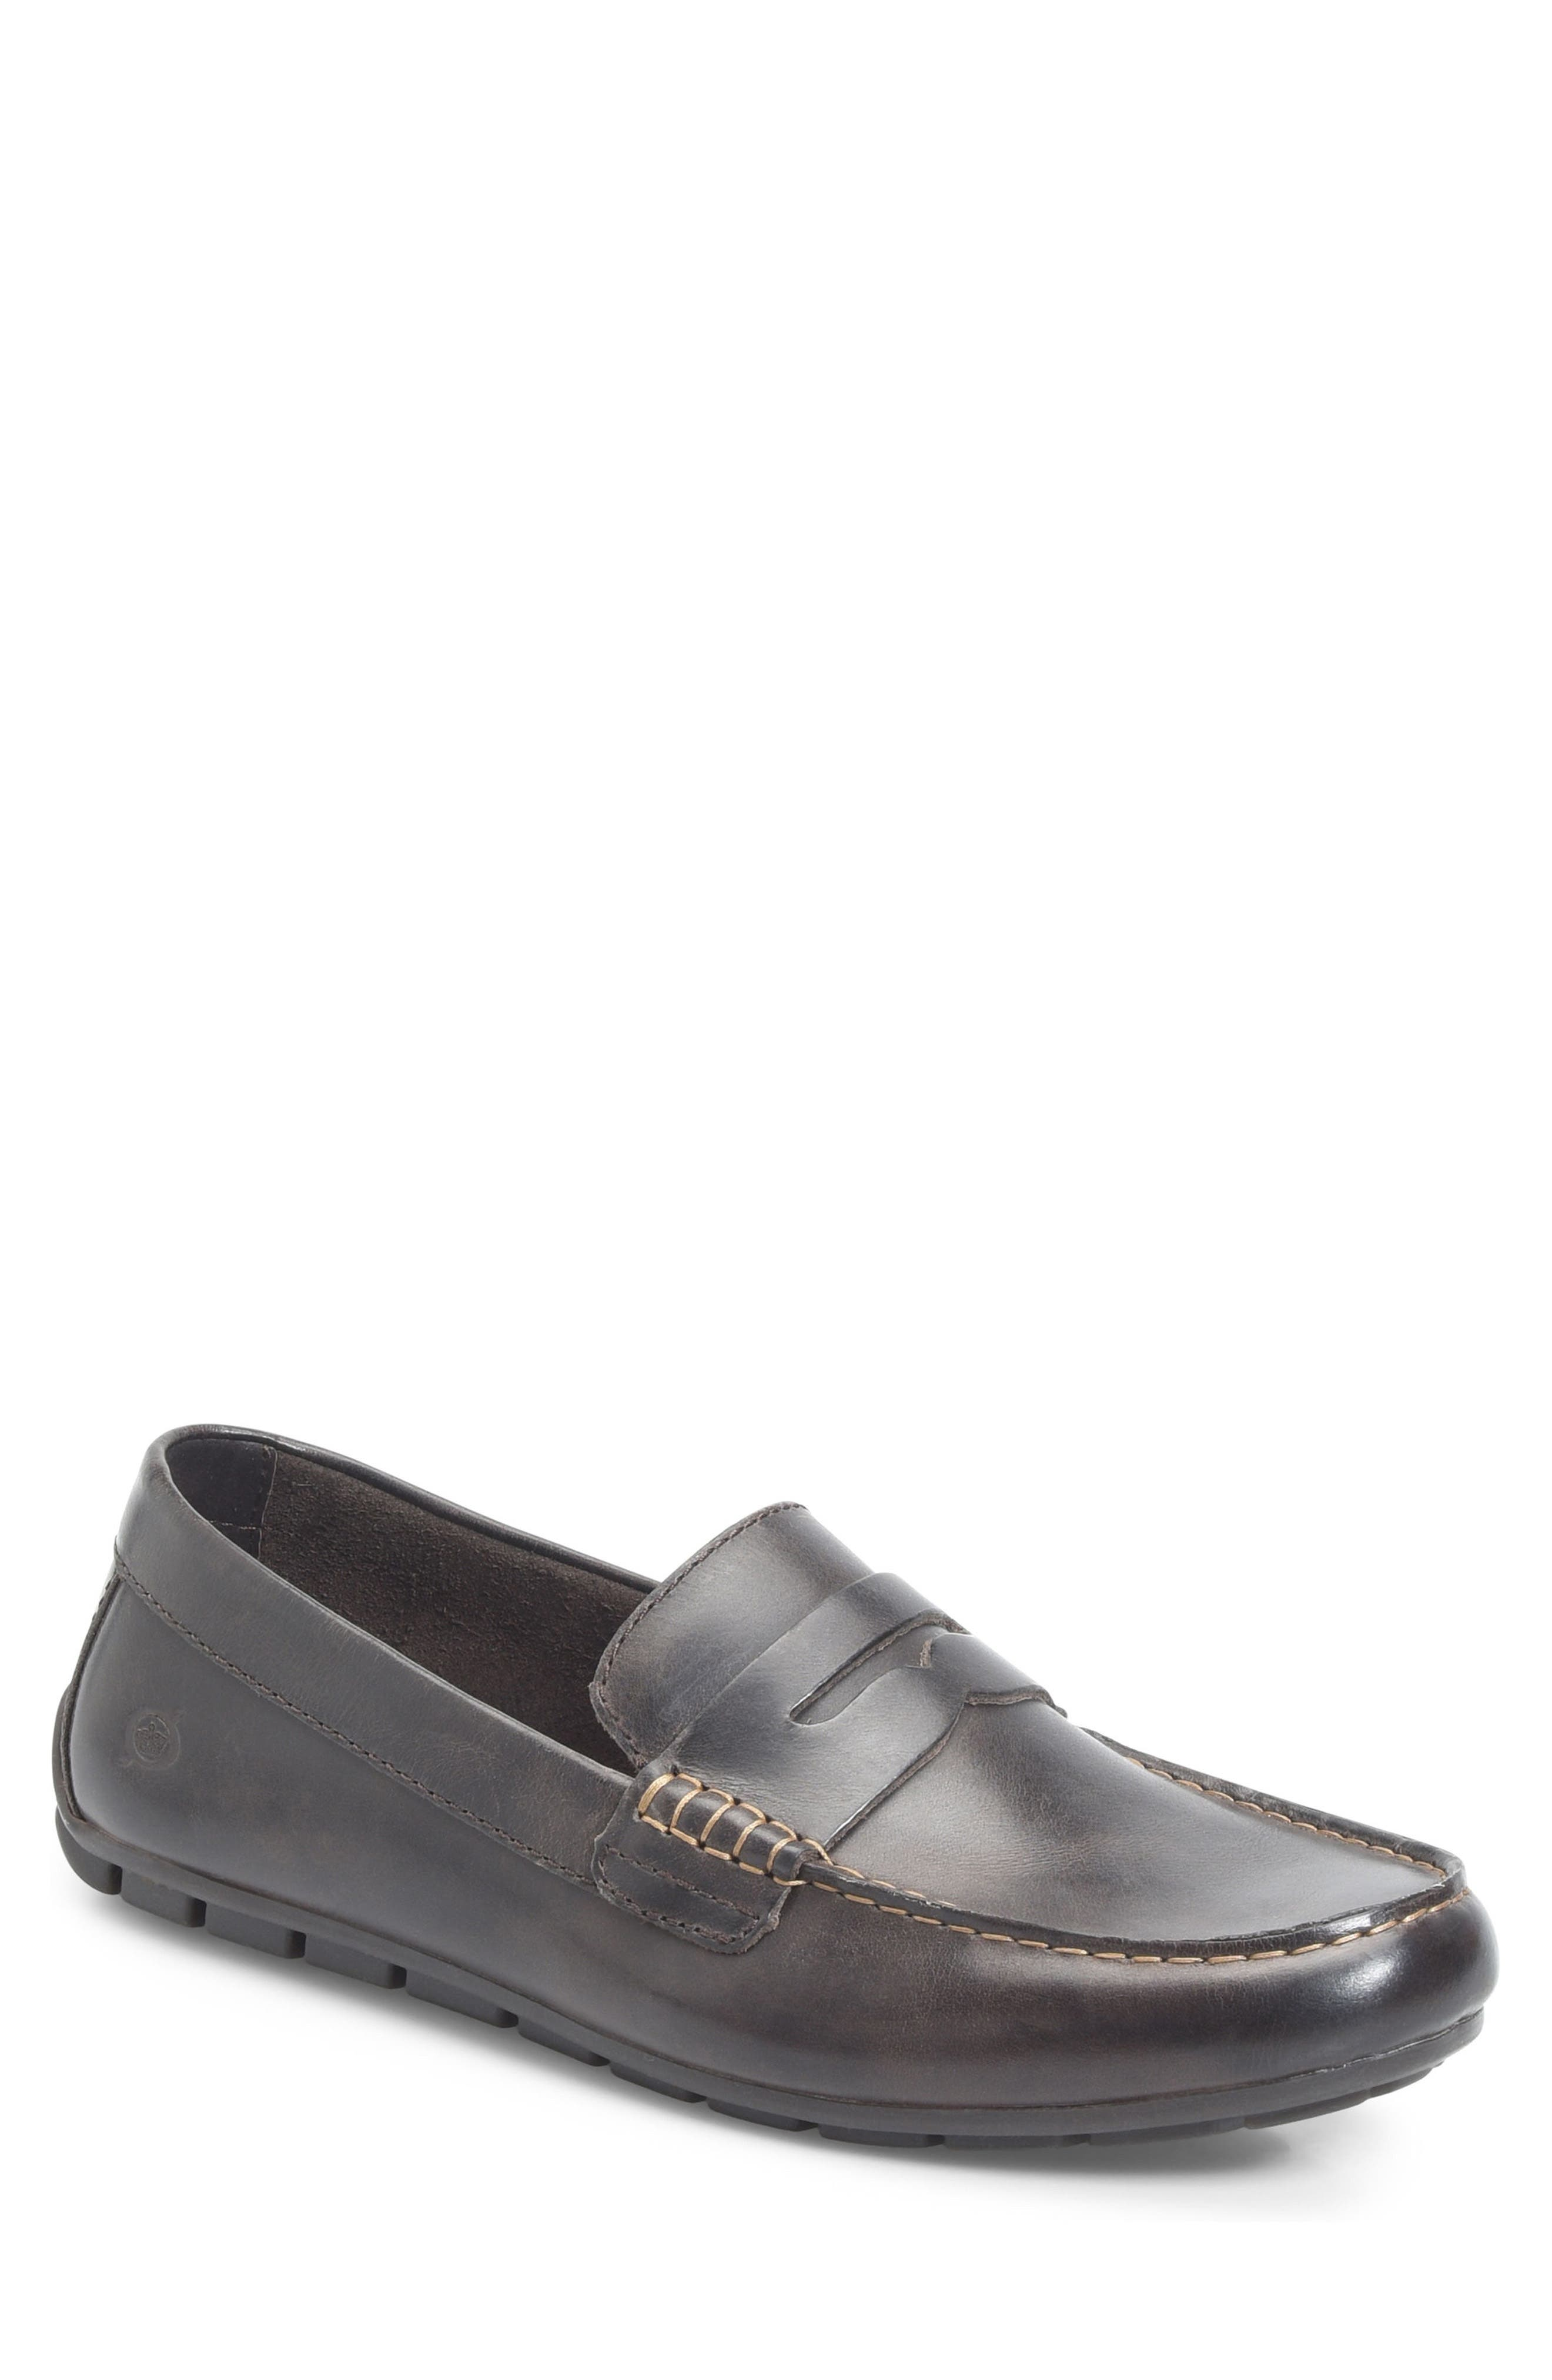 Andes Driving Shoe,                         Main,                         color, Chocolate